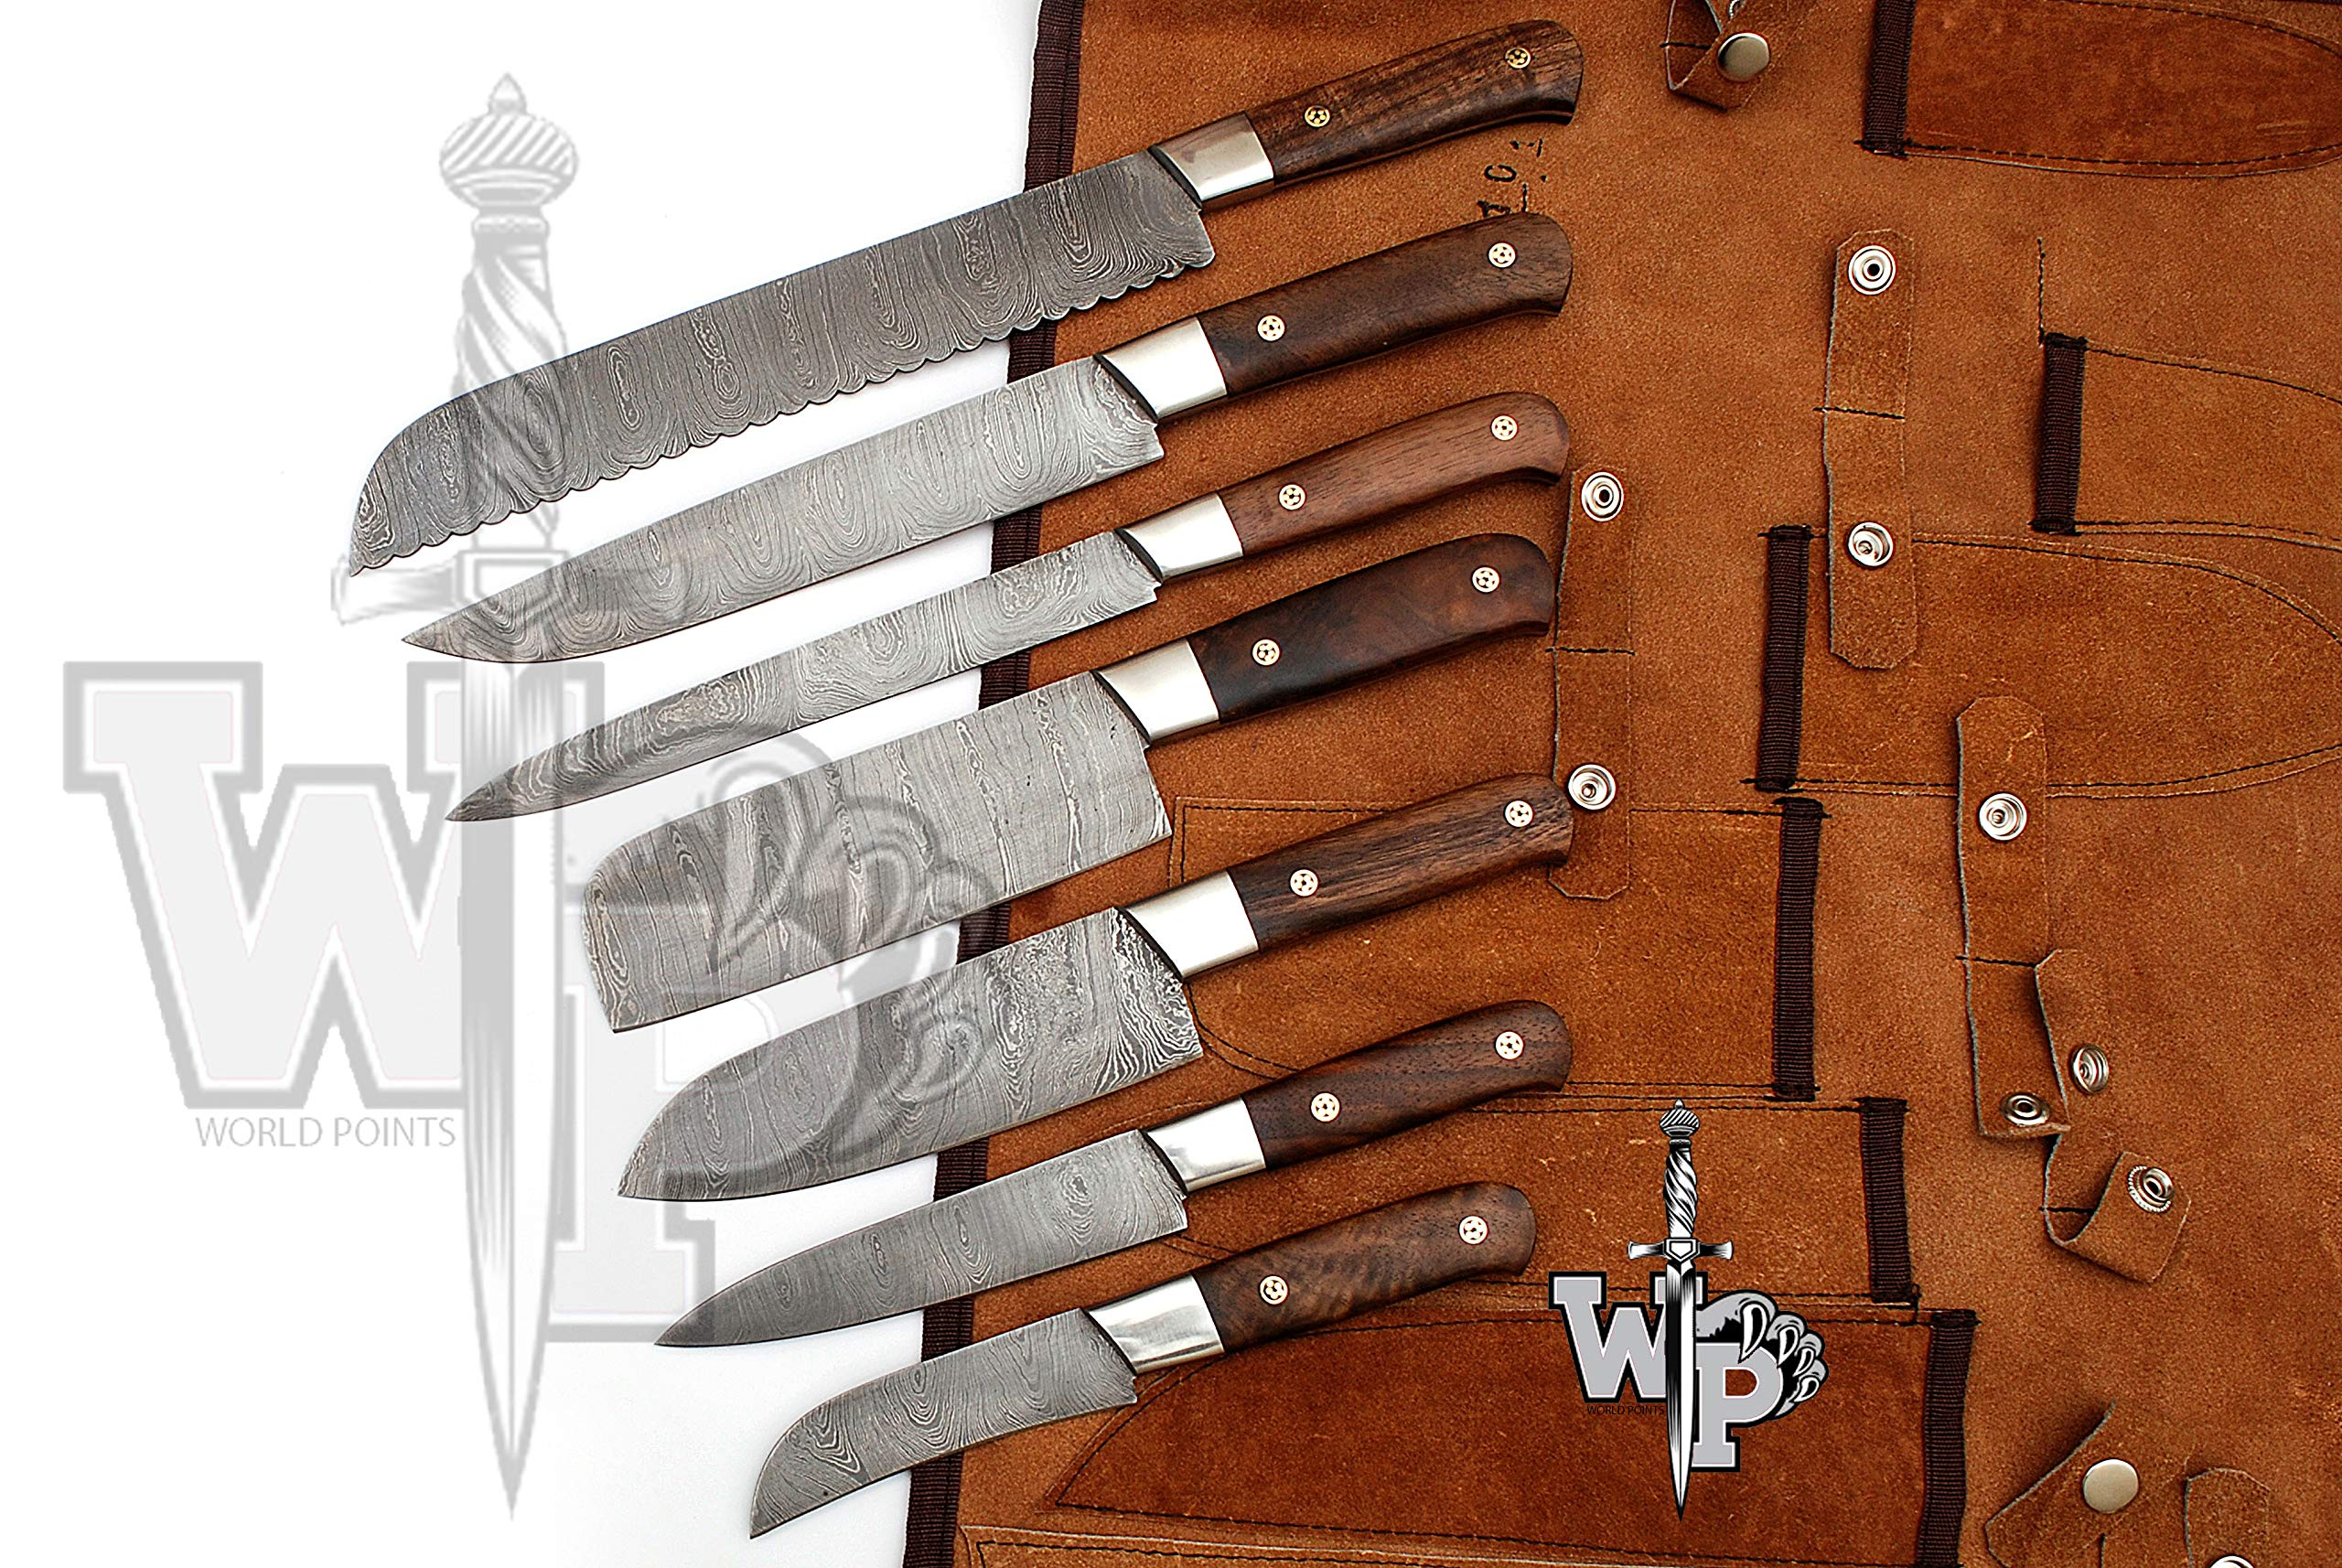 WP-1081 Custom Handmade Damascus Kitchen/Chef Knife Set 7/Piece Pocket Case Chef Knife Roll Bag By World Points (Walnut Wood)